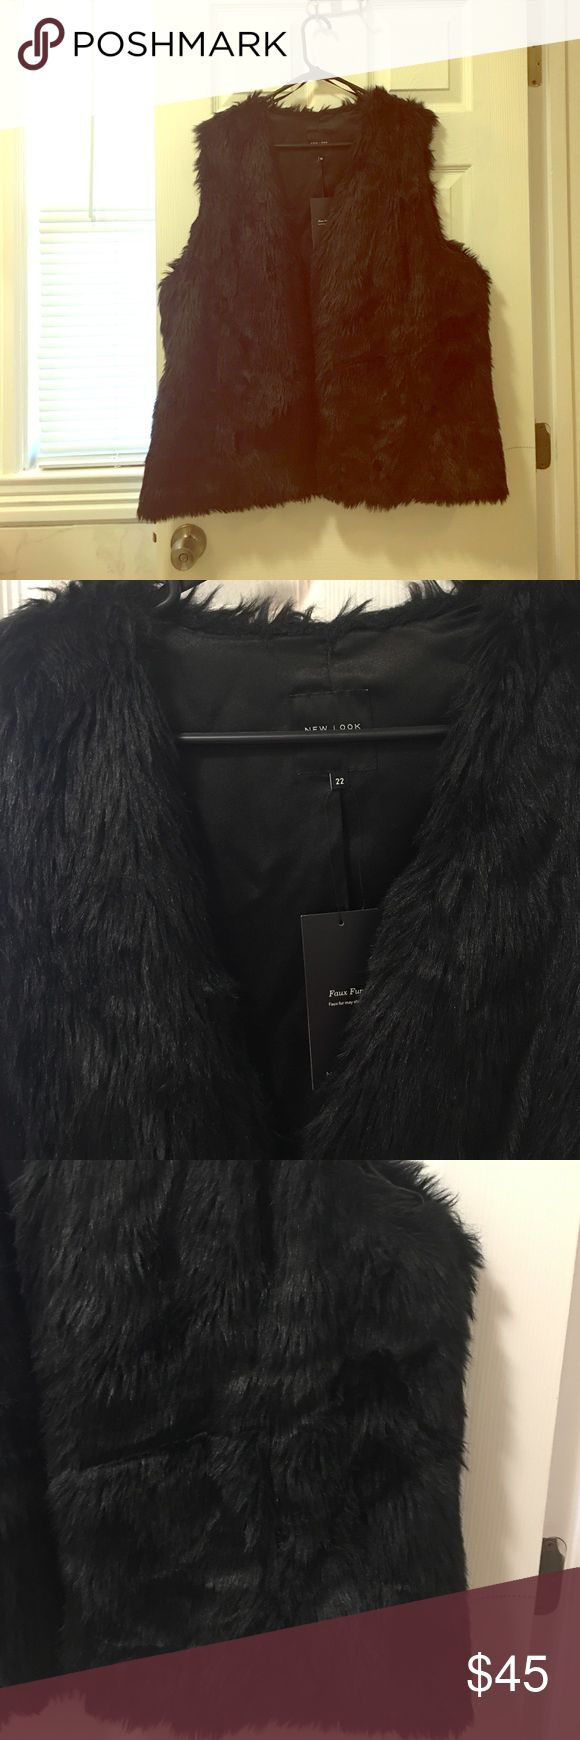 NWT ASOS faux fur vest Never worn! Says size 22 but is in UK sizes. Fits like a 20 in my opinion. Jet black. Faux fur ASOS Curve Jackets & Coats Vests